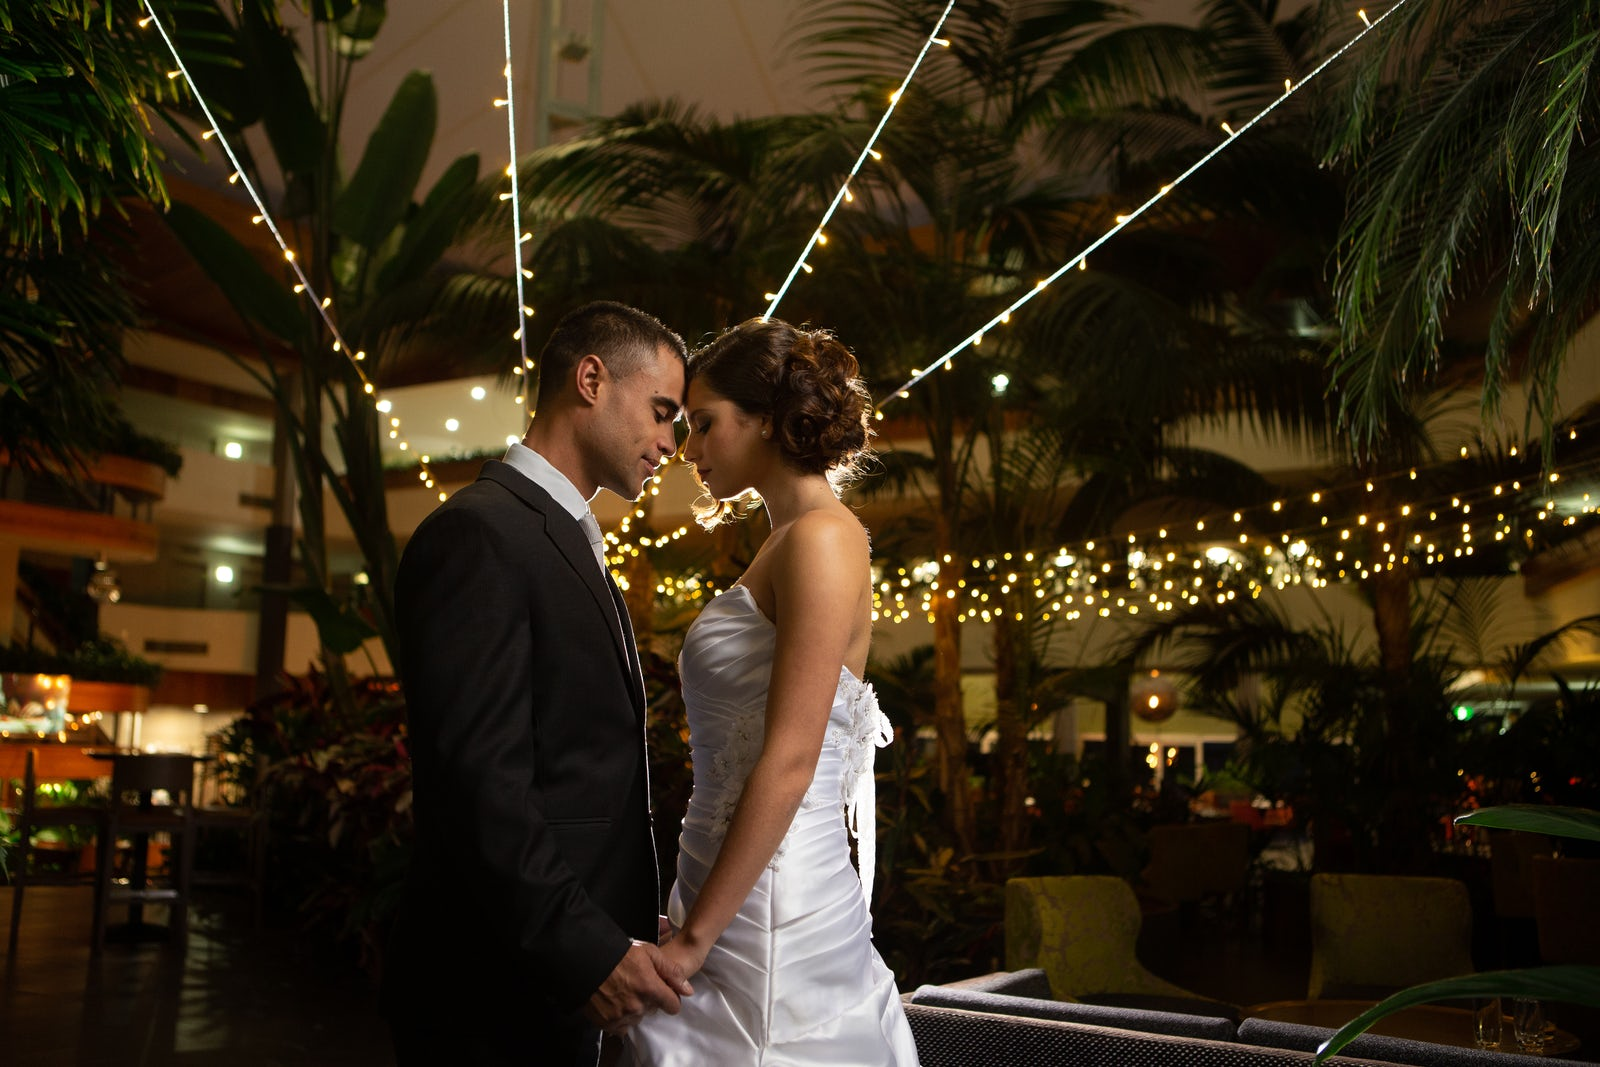 A picture of a wedding held at the Pavilion Hotel in Canberra